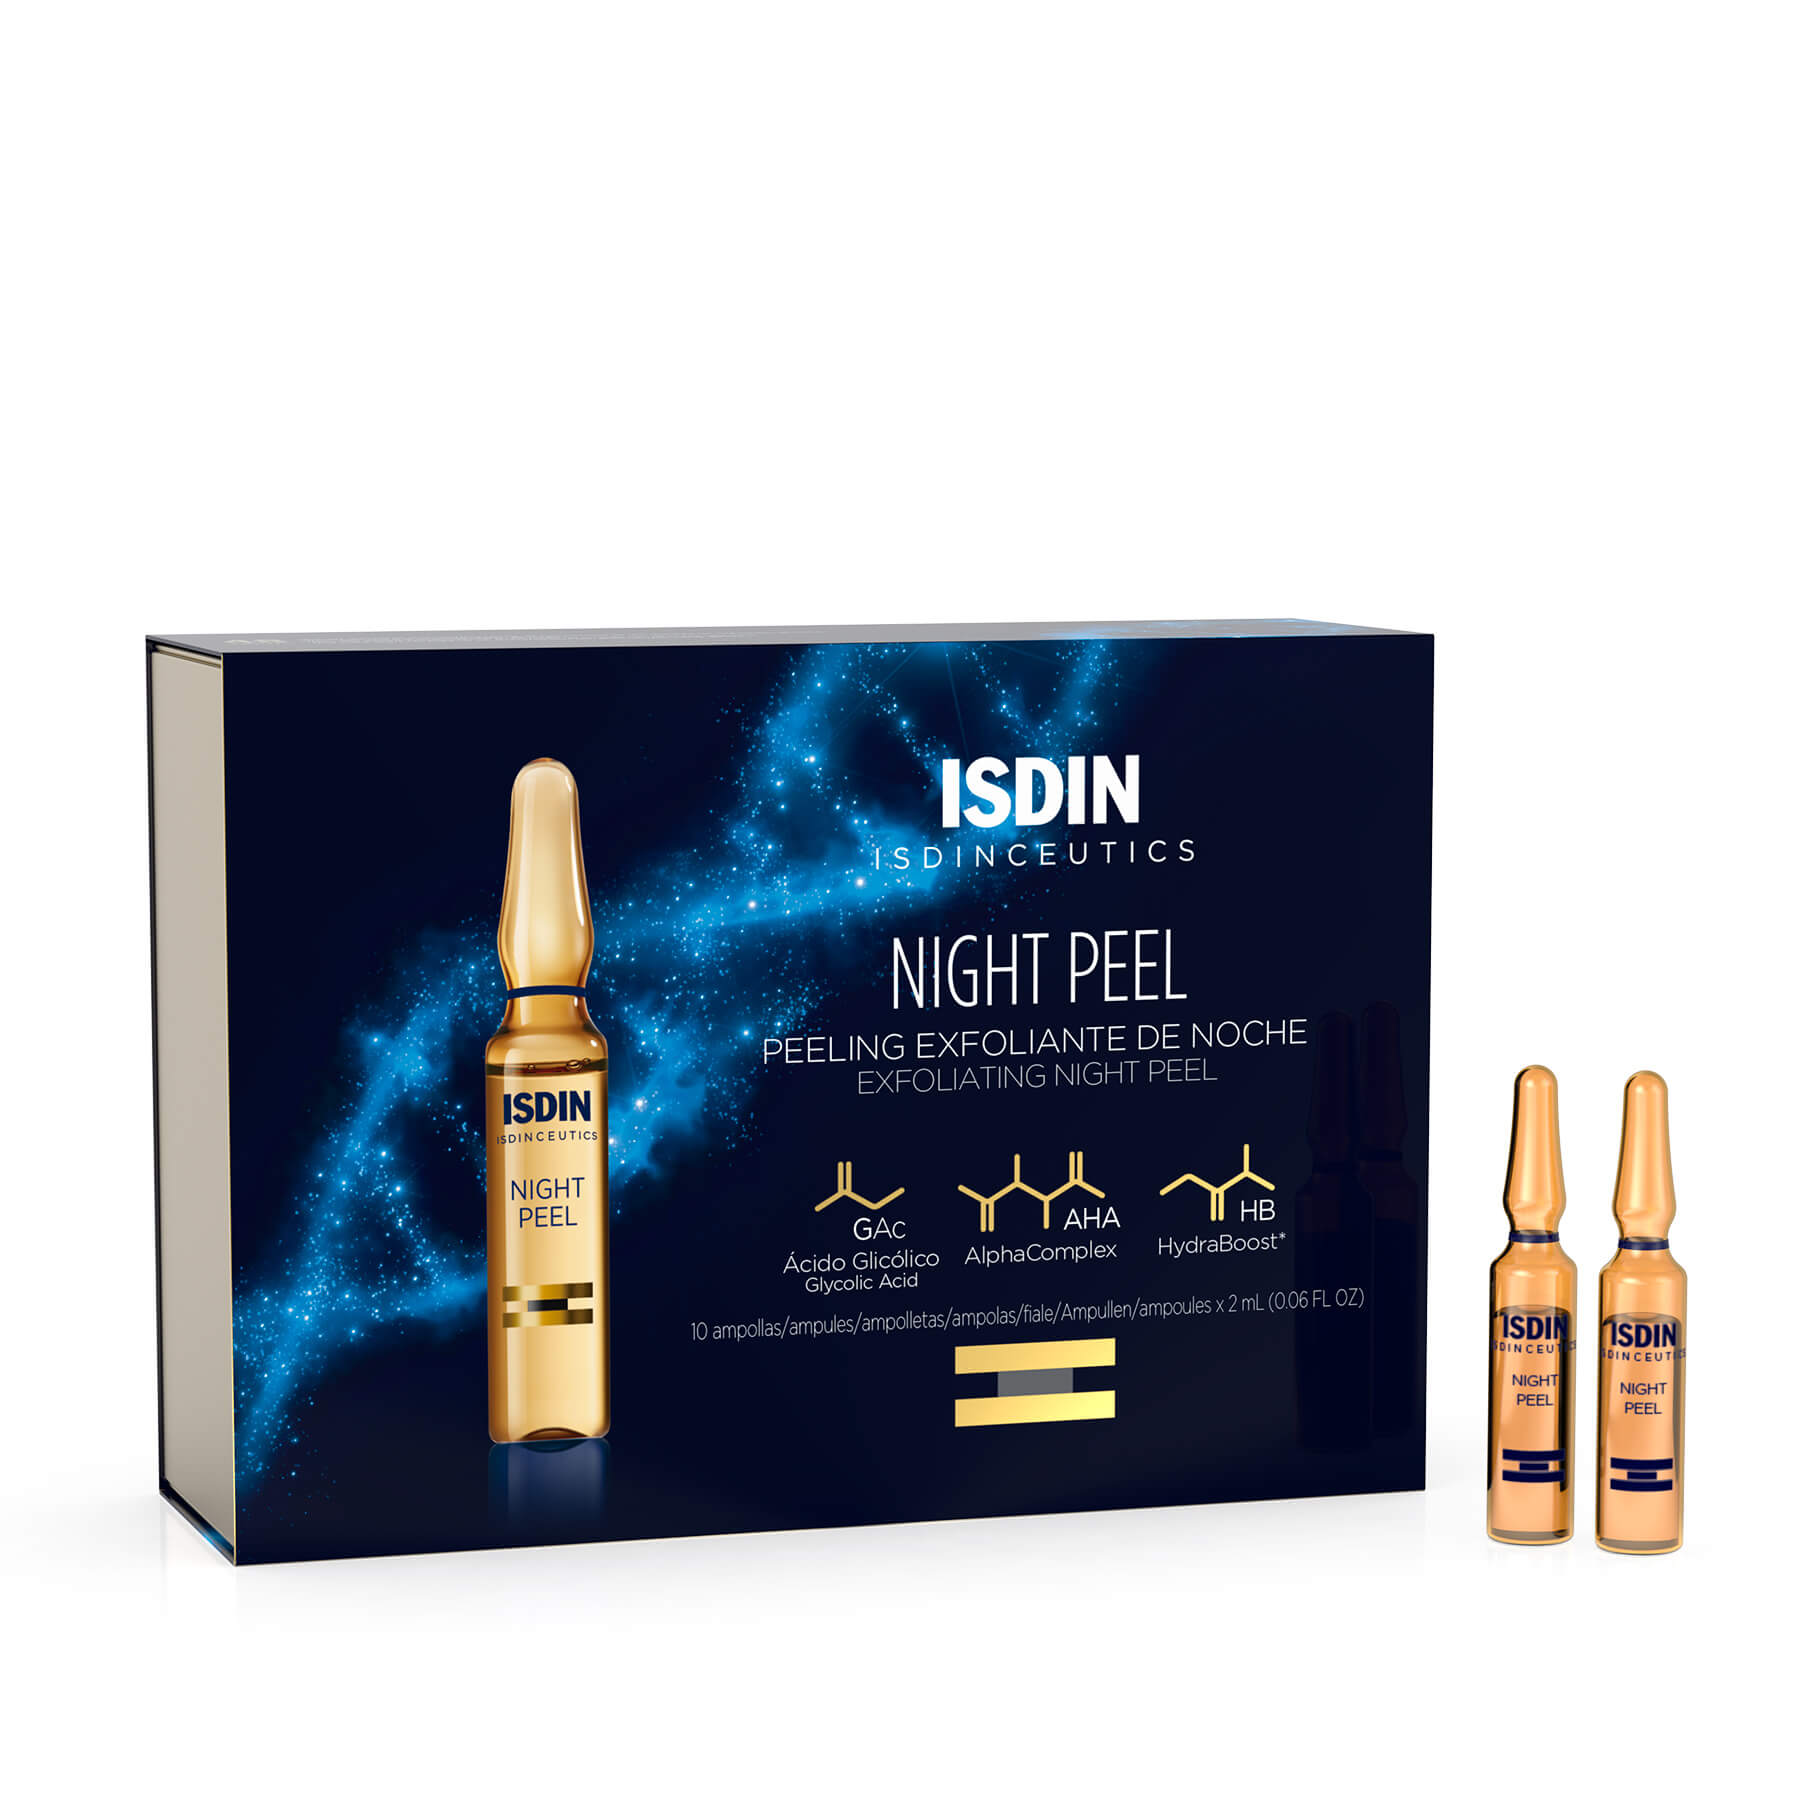 Night Peel 30 ampoules